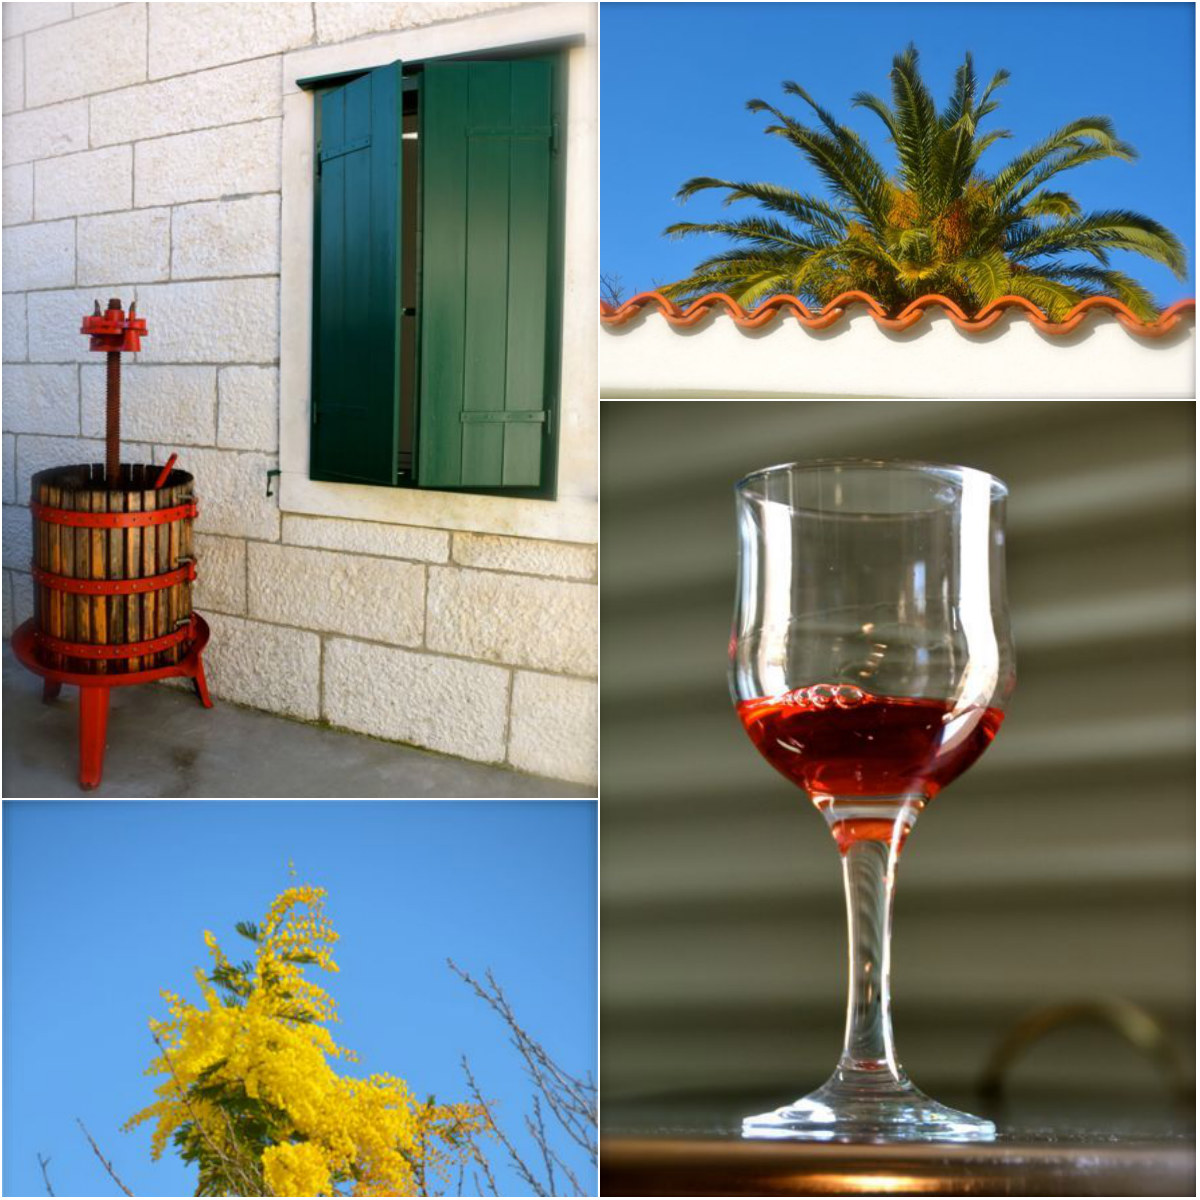 glass of wine, grape press, flowers, palm tree